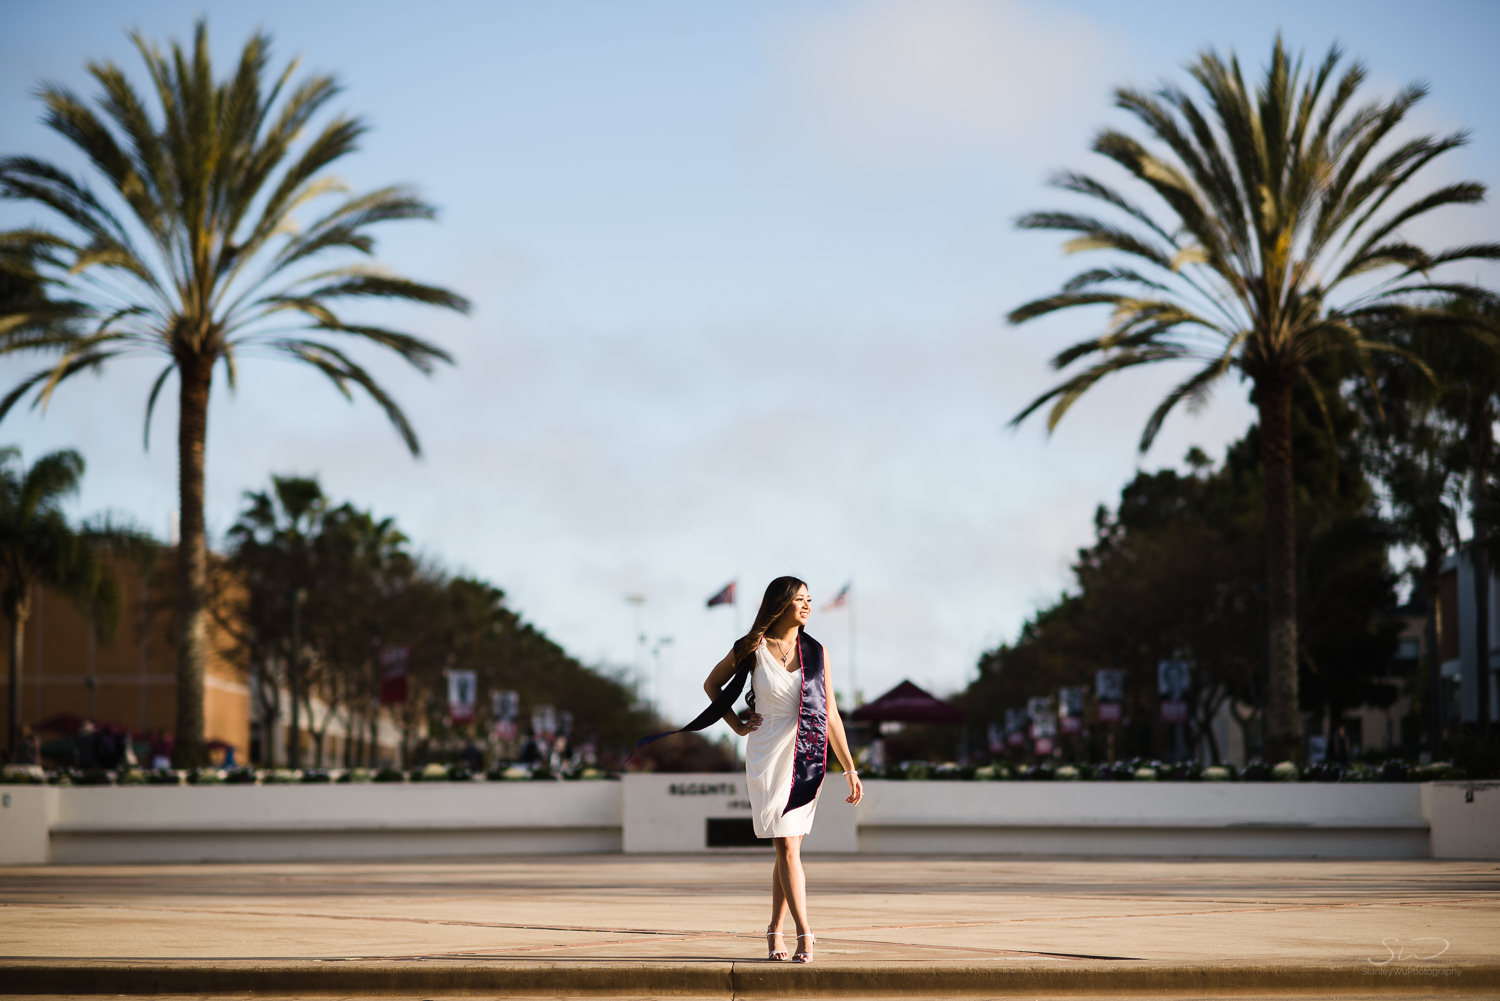 Epic pose on campus at Loyola Marymount University LMU. Best graduation portrait photography, Los Angeles.